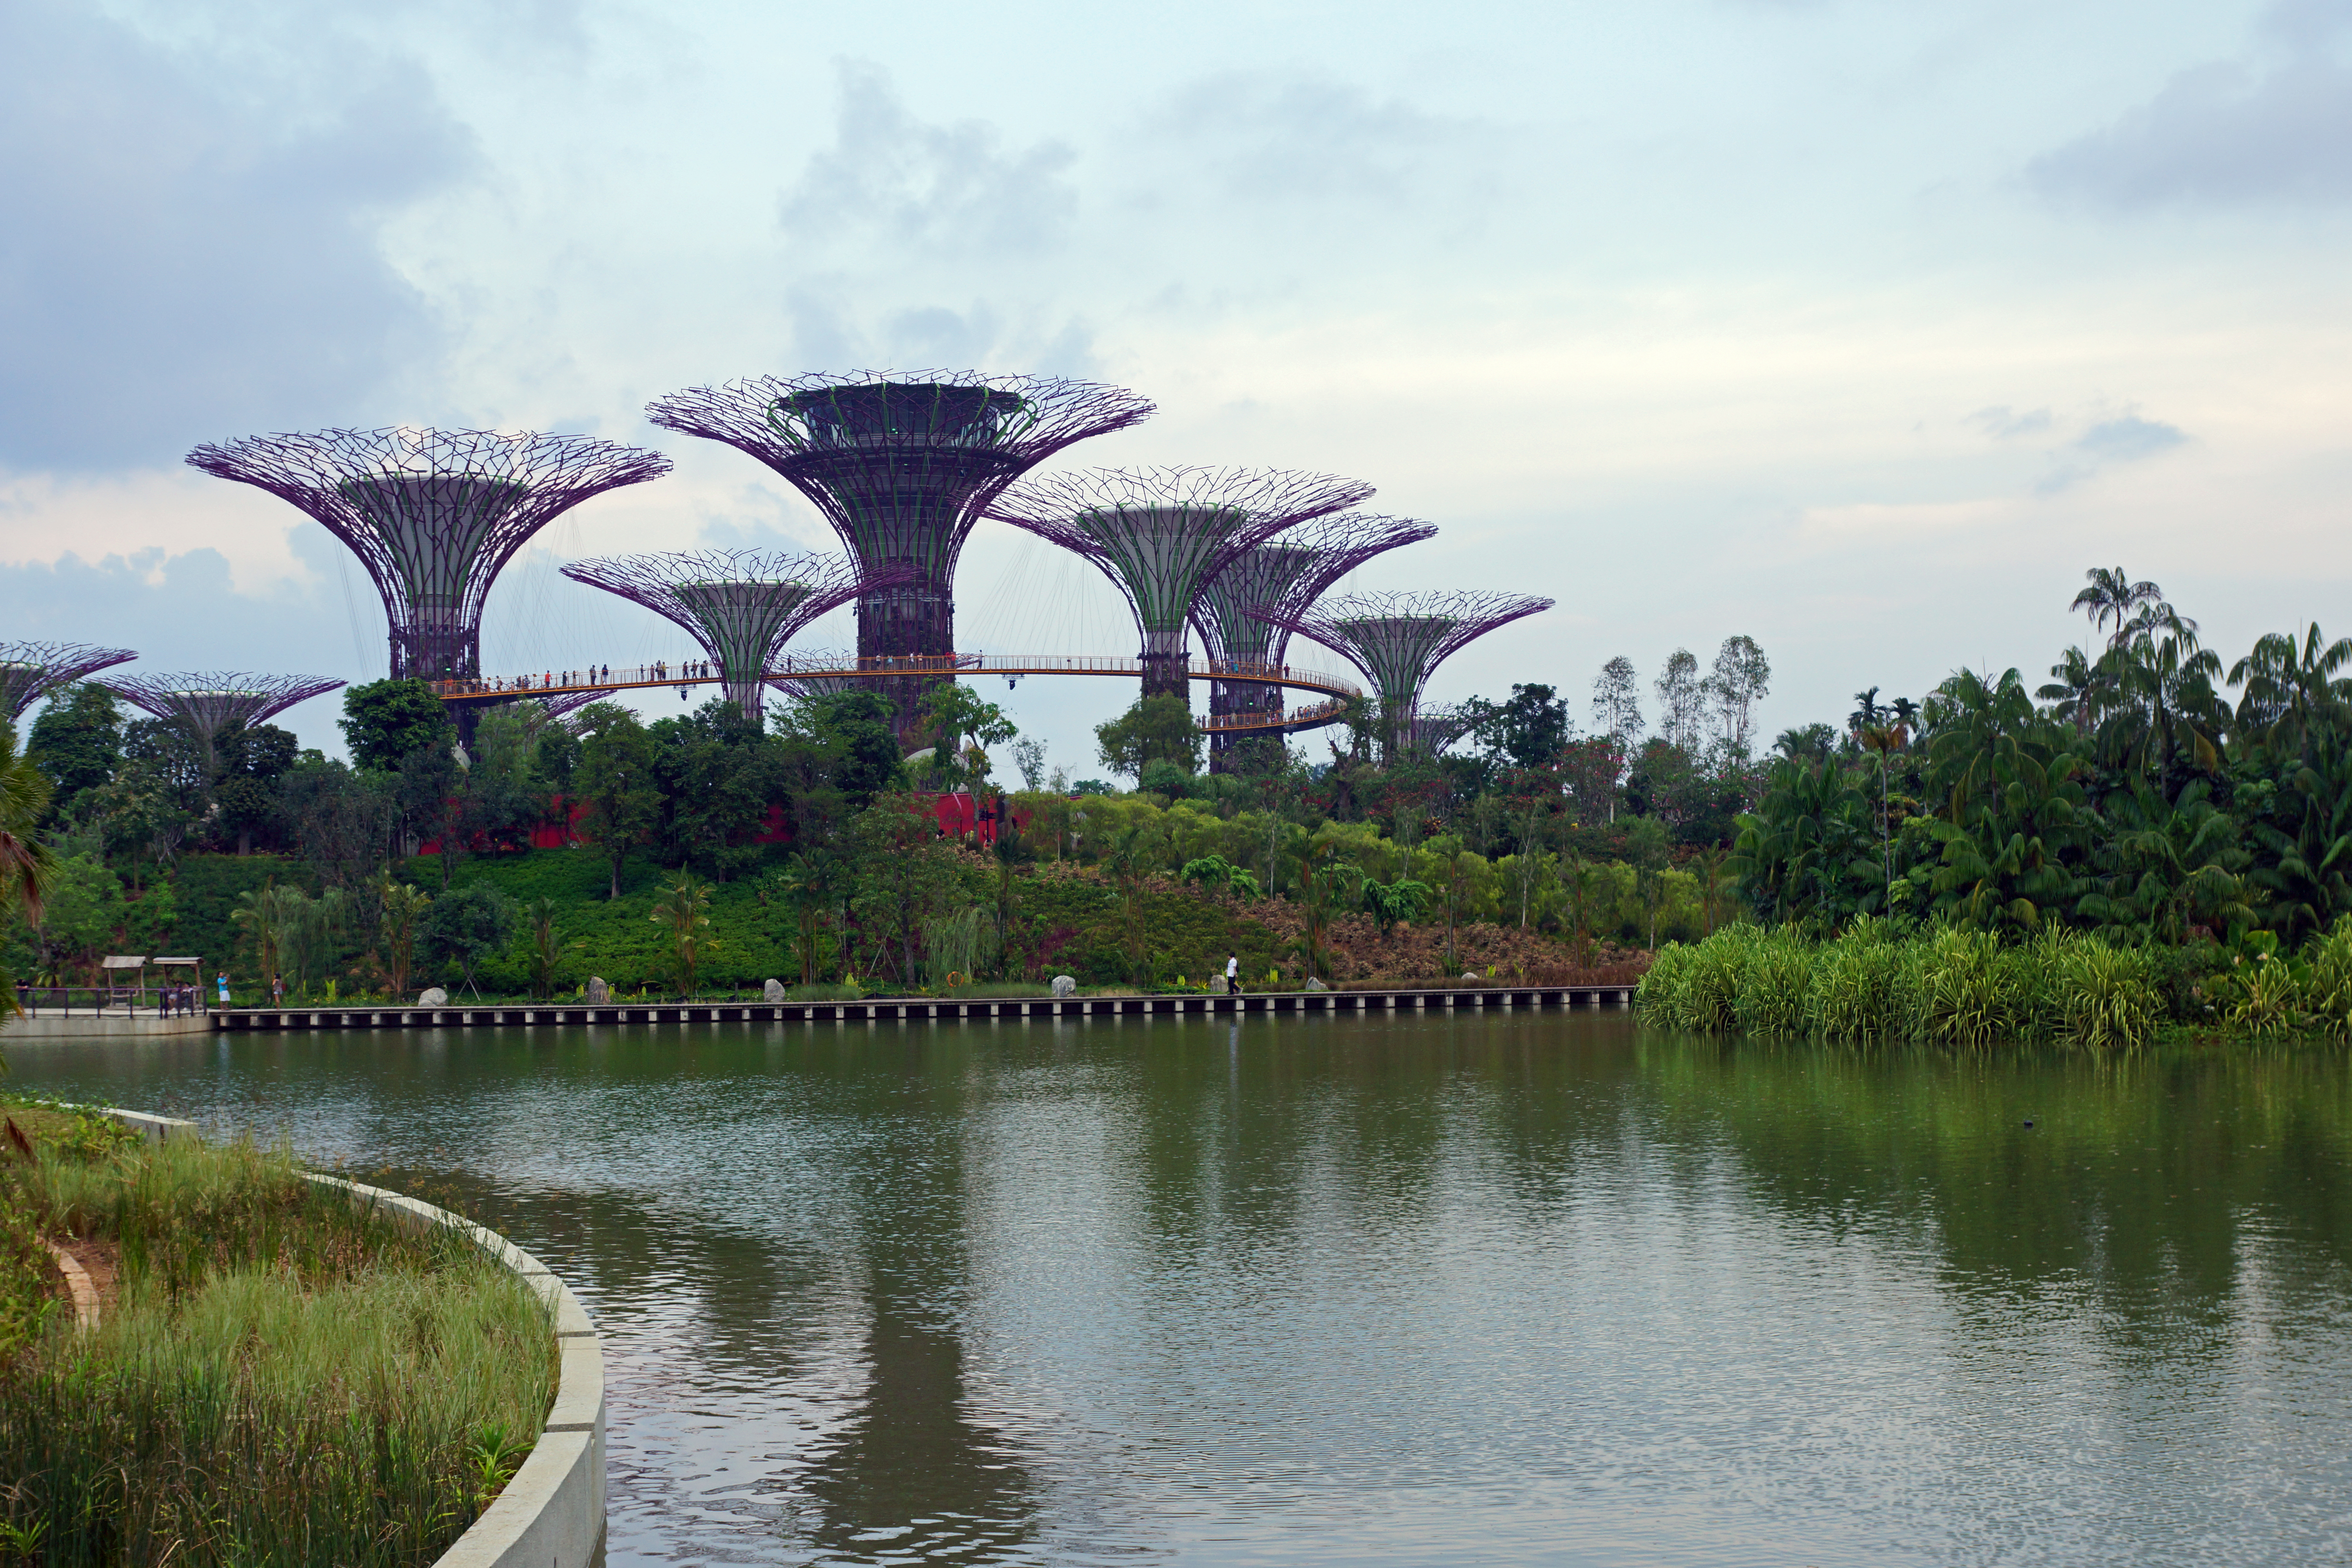 Garden By The Bay Water Park file:supertree grove and dragonfly lake, gardensthe bay